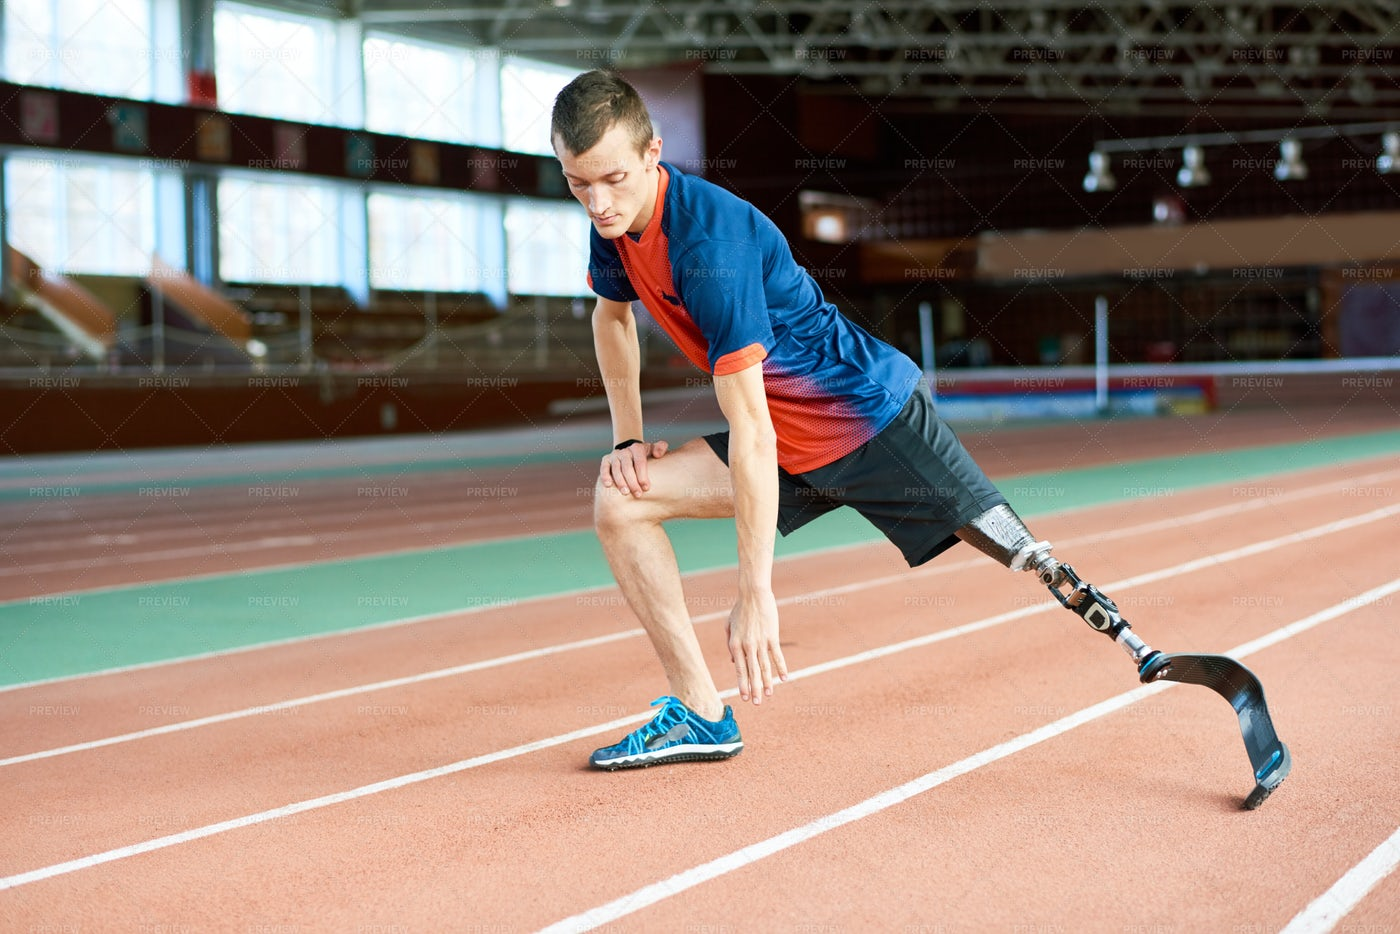 Handicapped Runner Stretching In...: Stock Photos